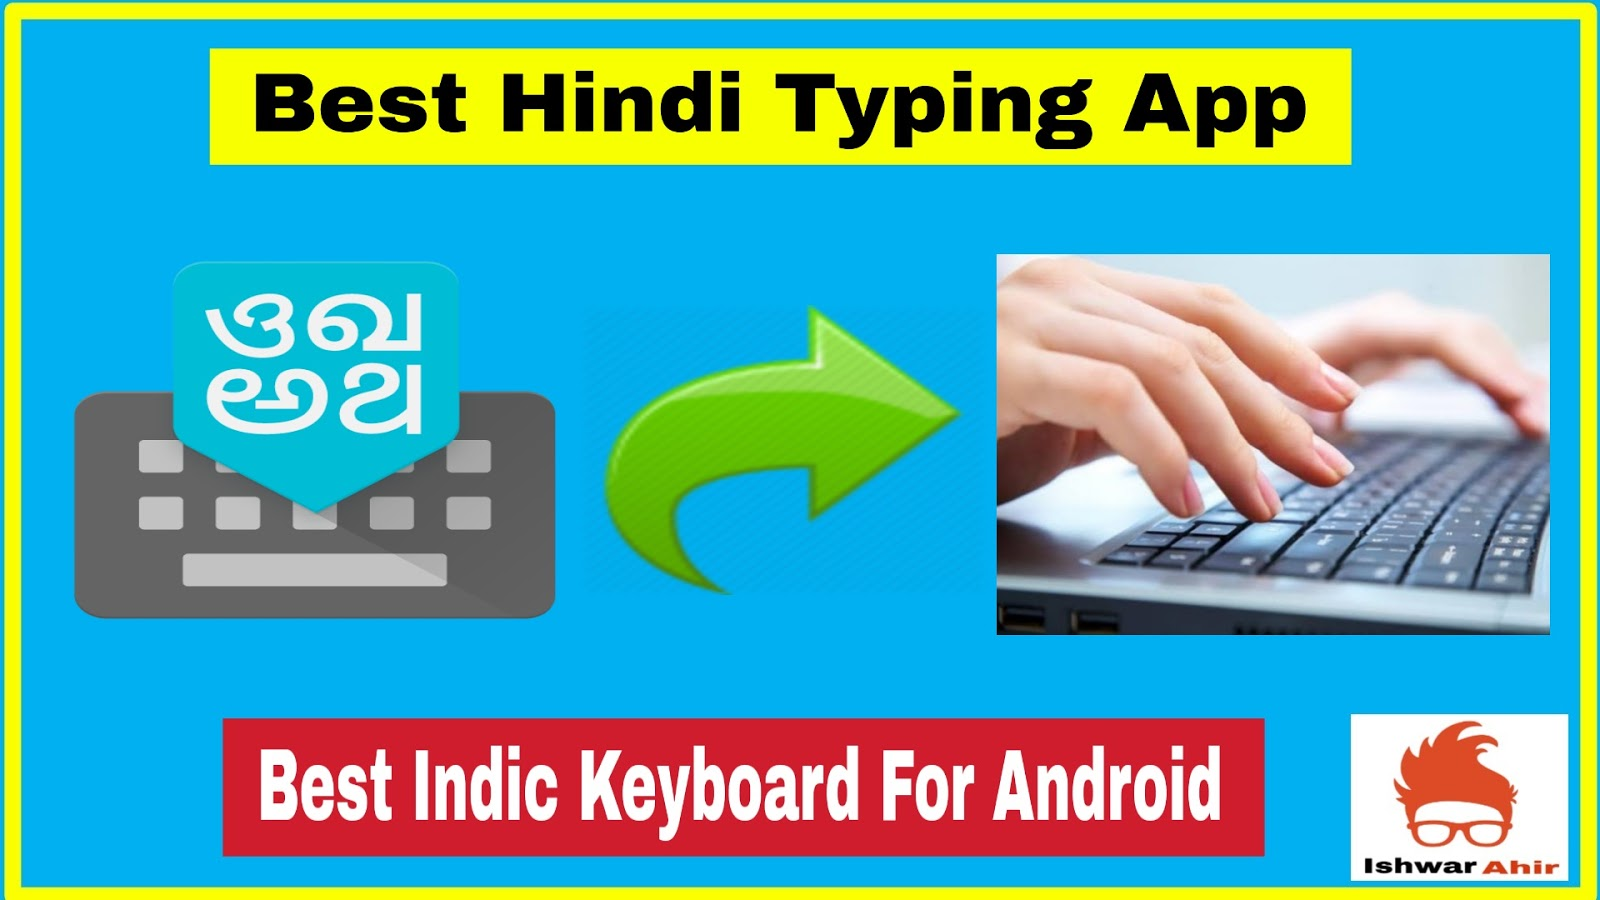 Best Hindi Typing App for Android